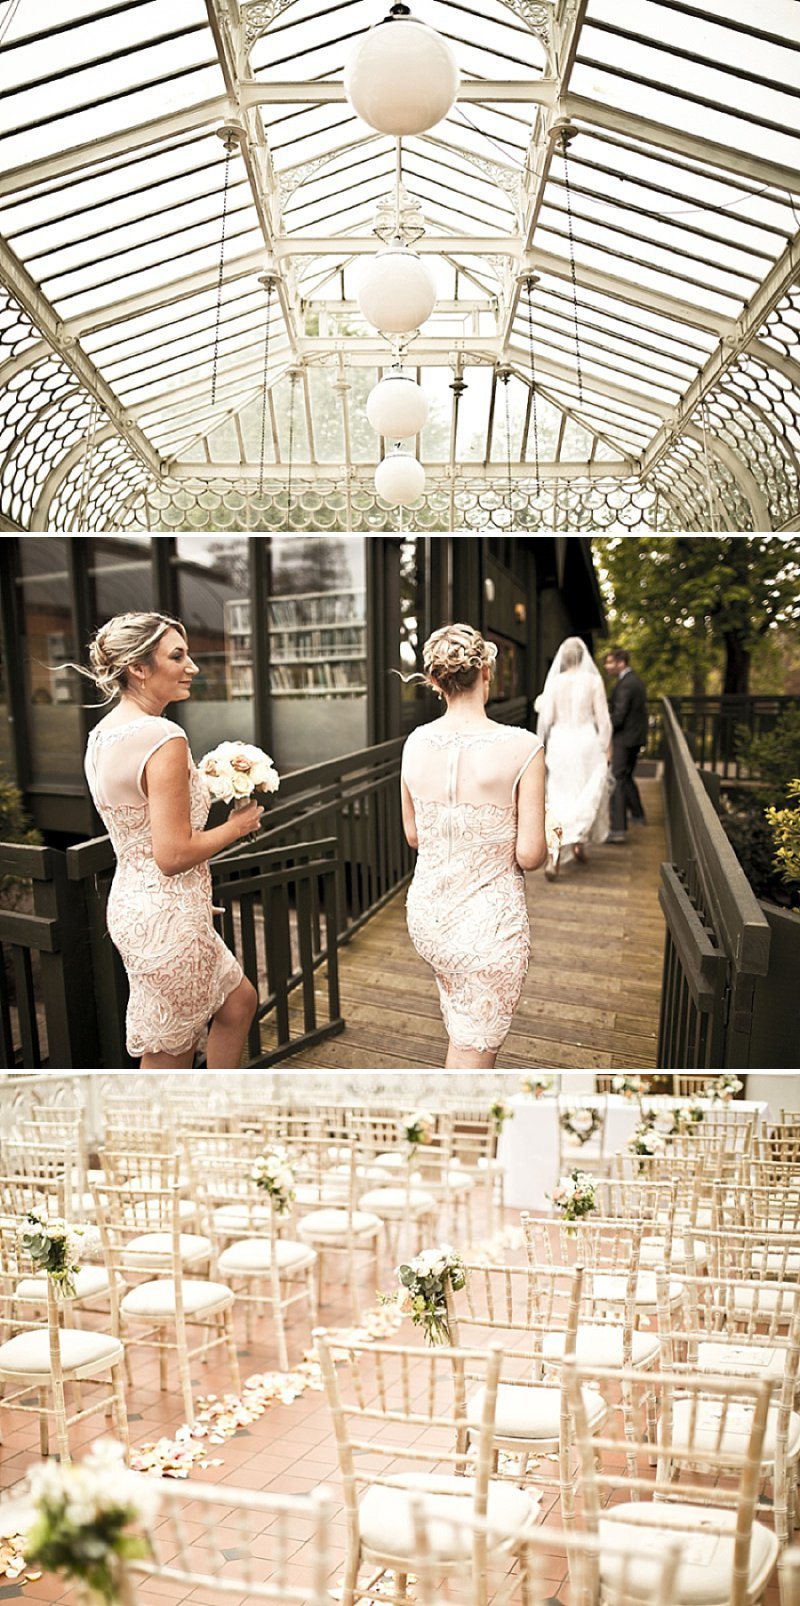 Laid Back London Wedding At The Horniman Museum With A Peach And Rose Gold Colour Scheme With Bride In Adagio By Claire Pettibone With Bridesmaids In Nude Dresses From Miss Selfridge 3